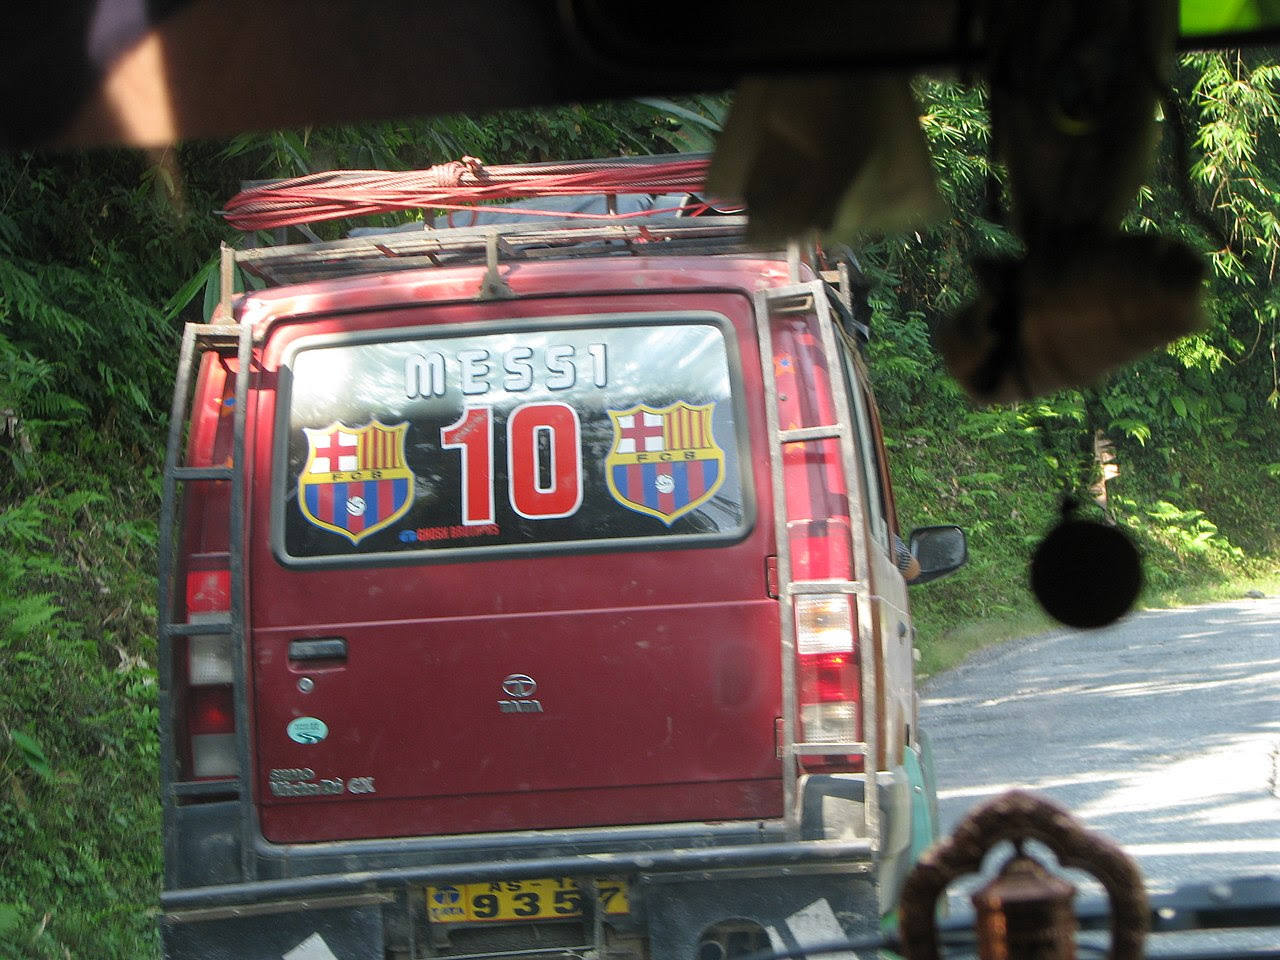 http://upload.wikimedia.org/wikipedia/commons/thumb/c/c6/Messi_car.jpg/1280px-Messi_car.jpg